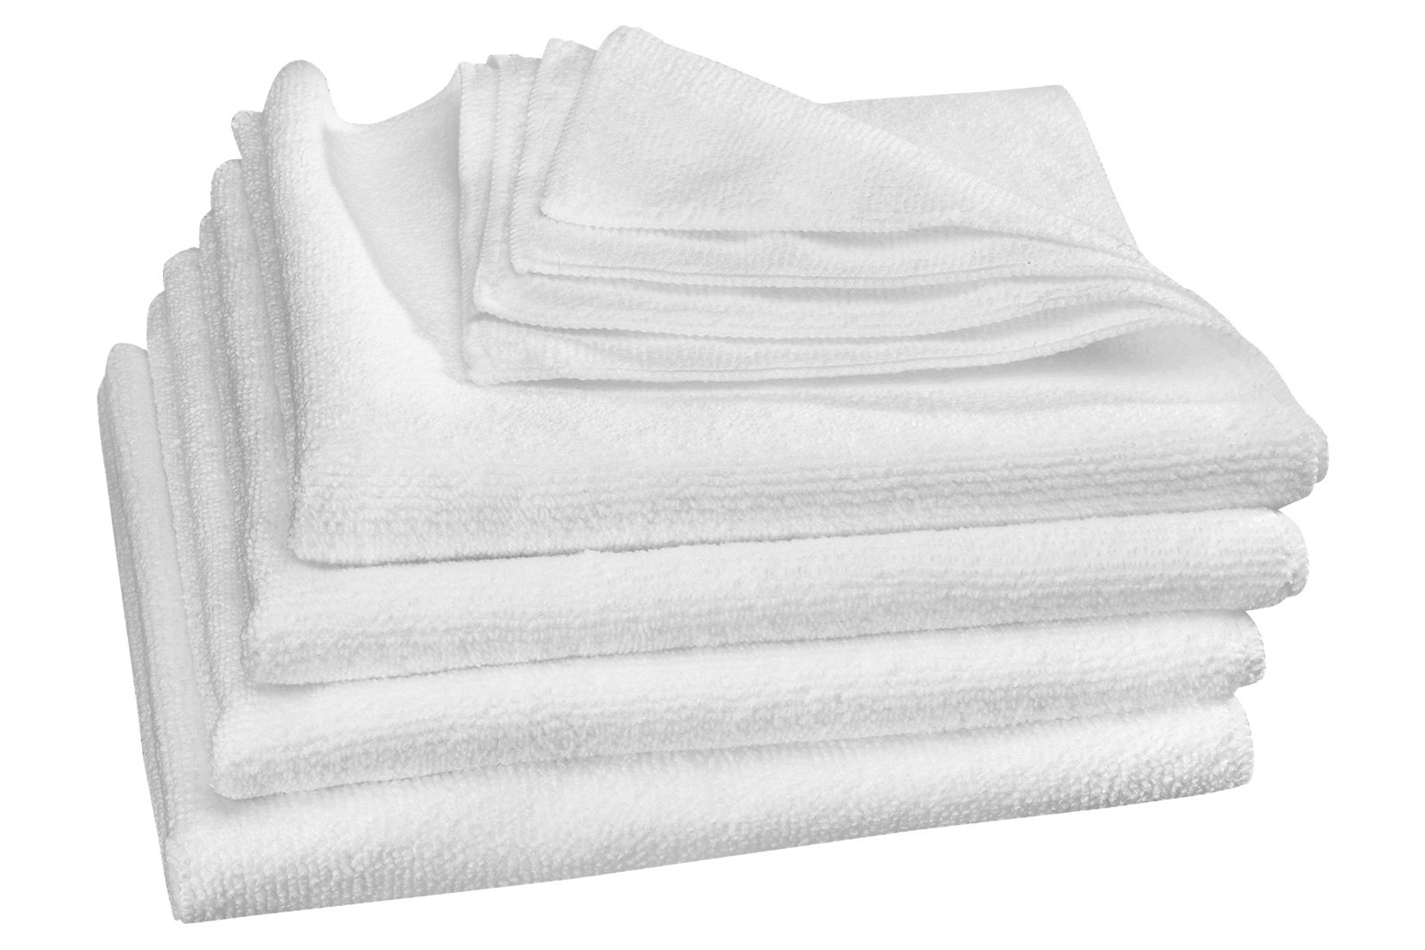 Weathertech TechCare White Microfibe r Cleaning Cloths 4 Pack